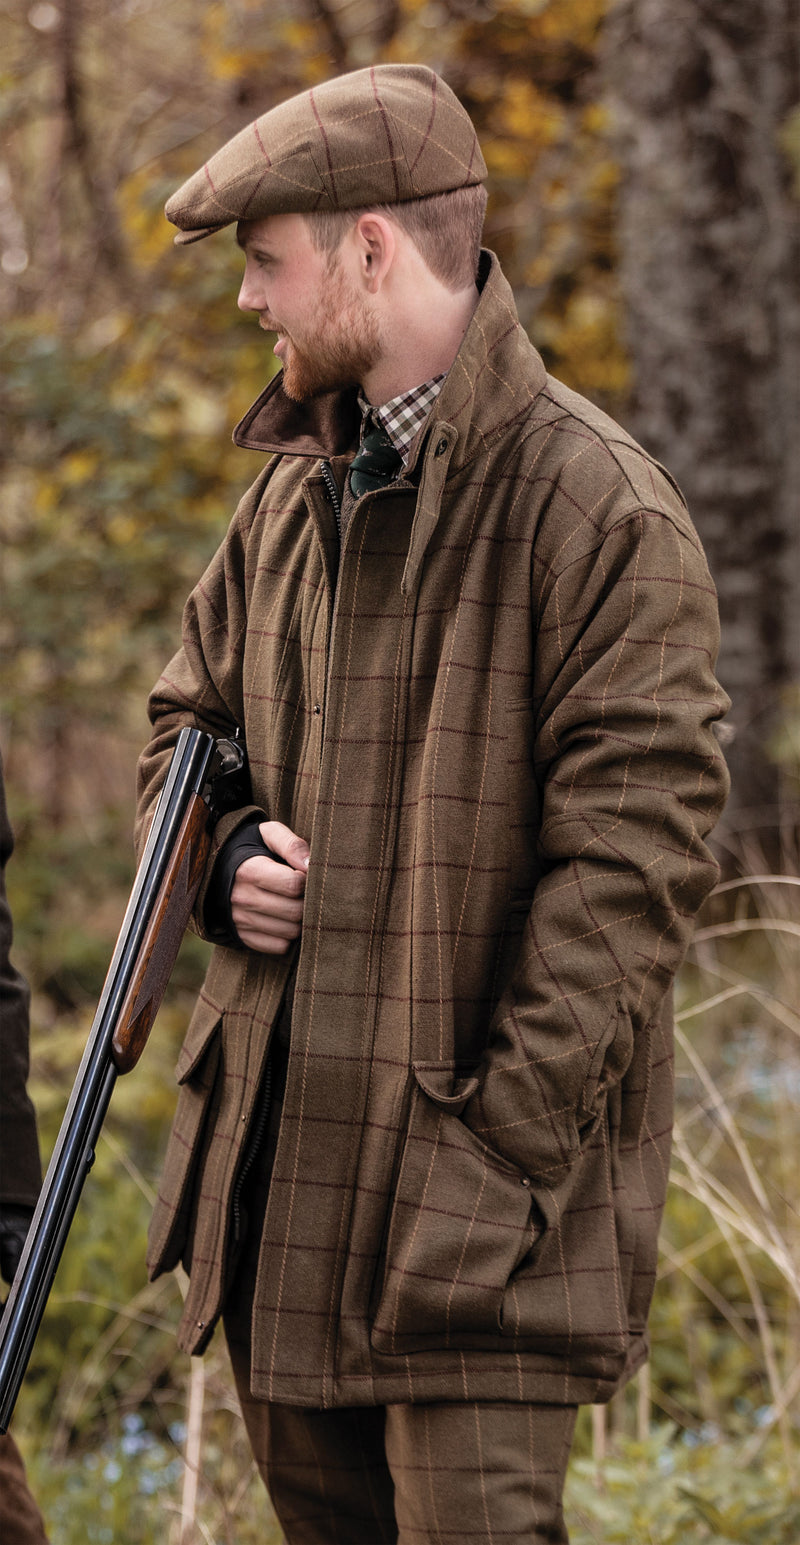 shooting jacket with the classic tweed look